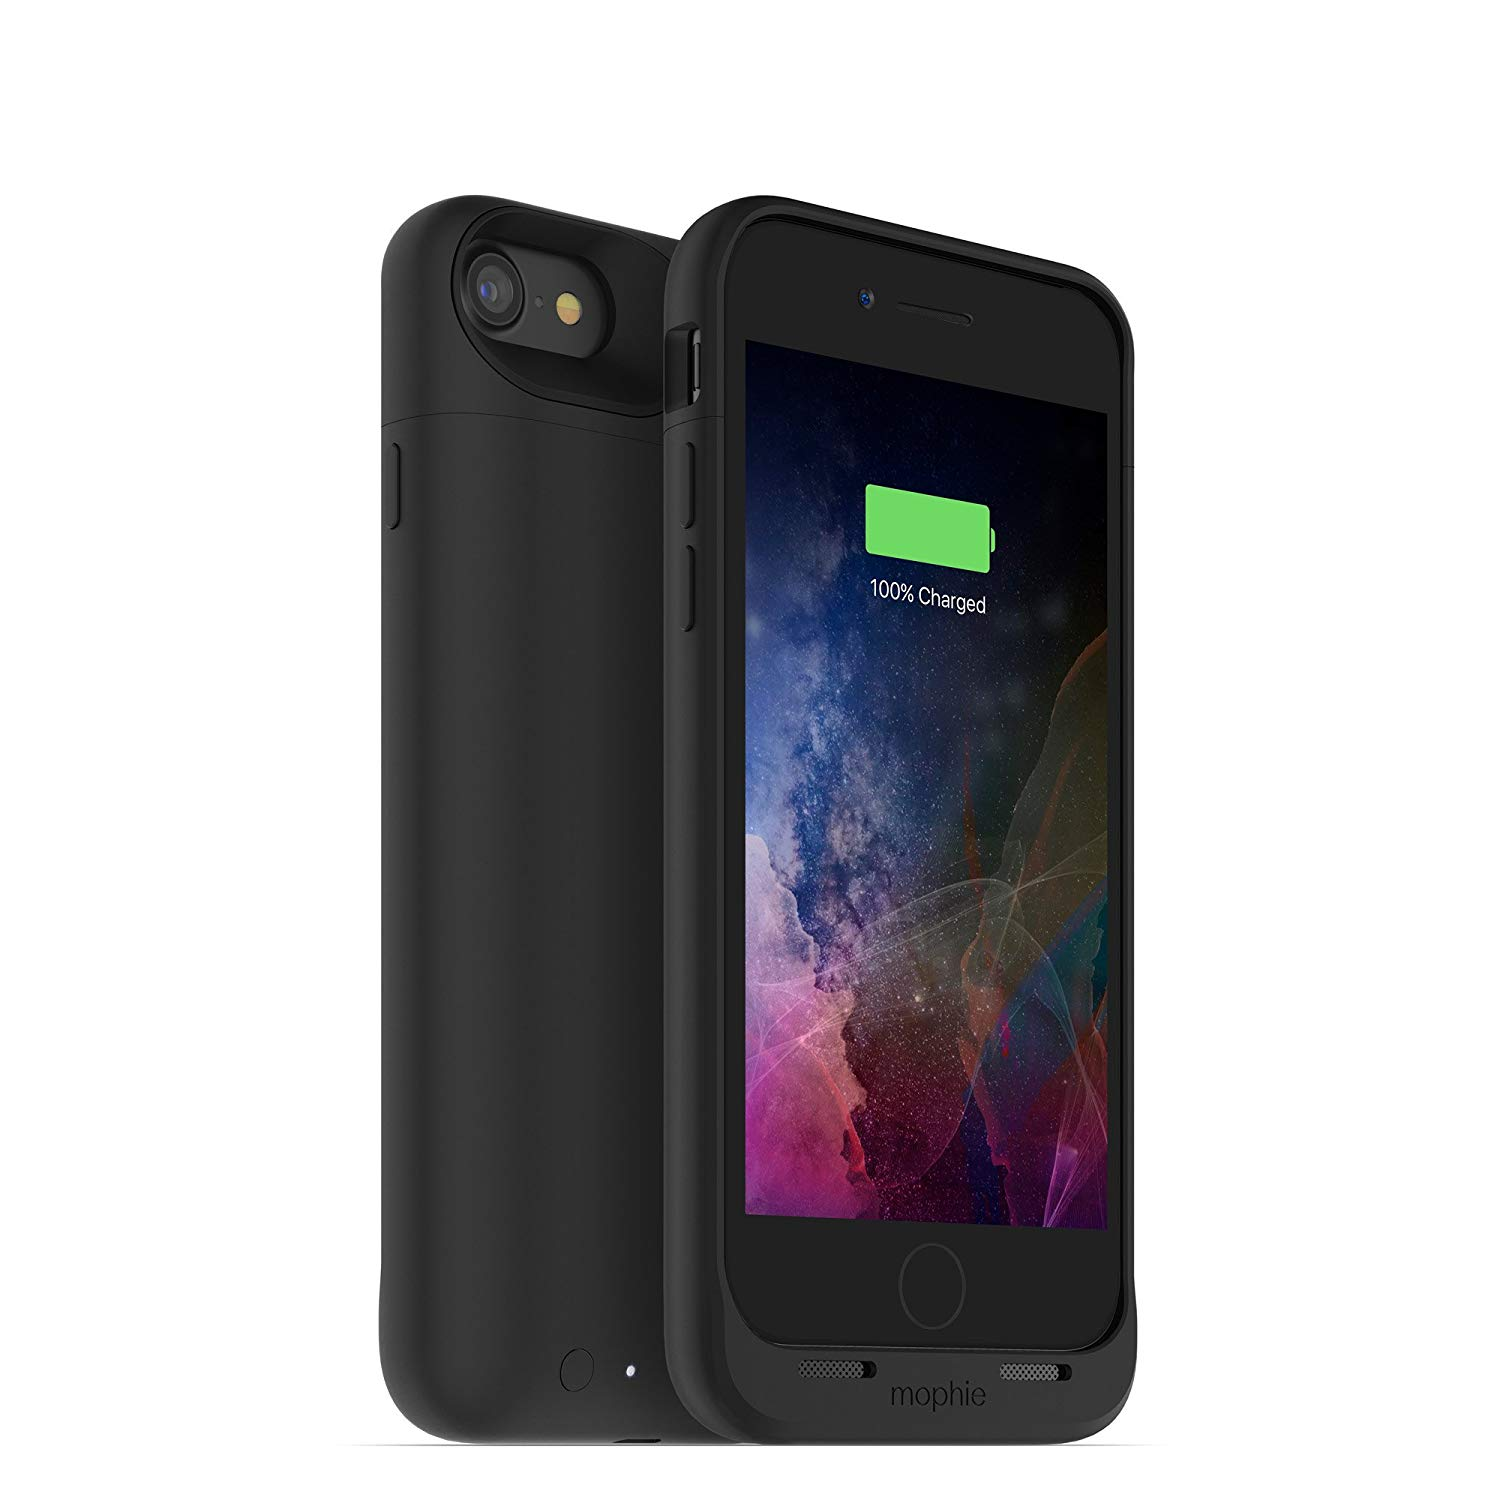 Steve Blum recommends Mophie Juice Pack charging case for iPhone 7/8